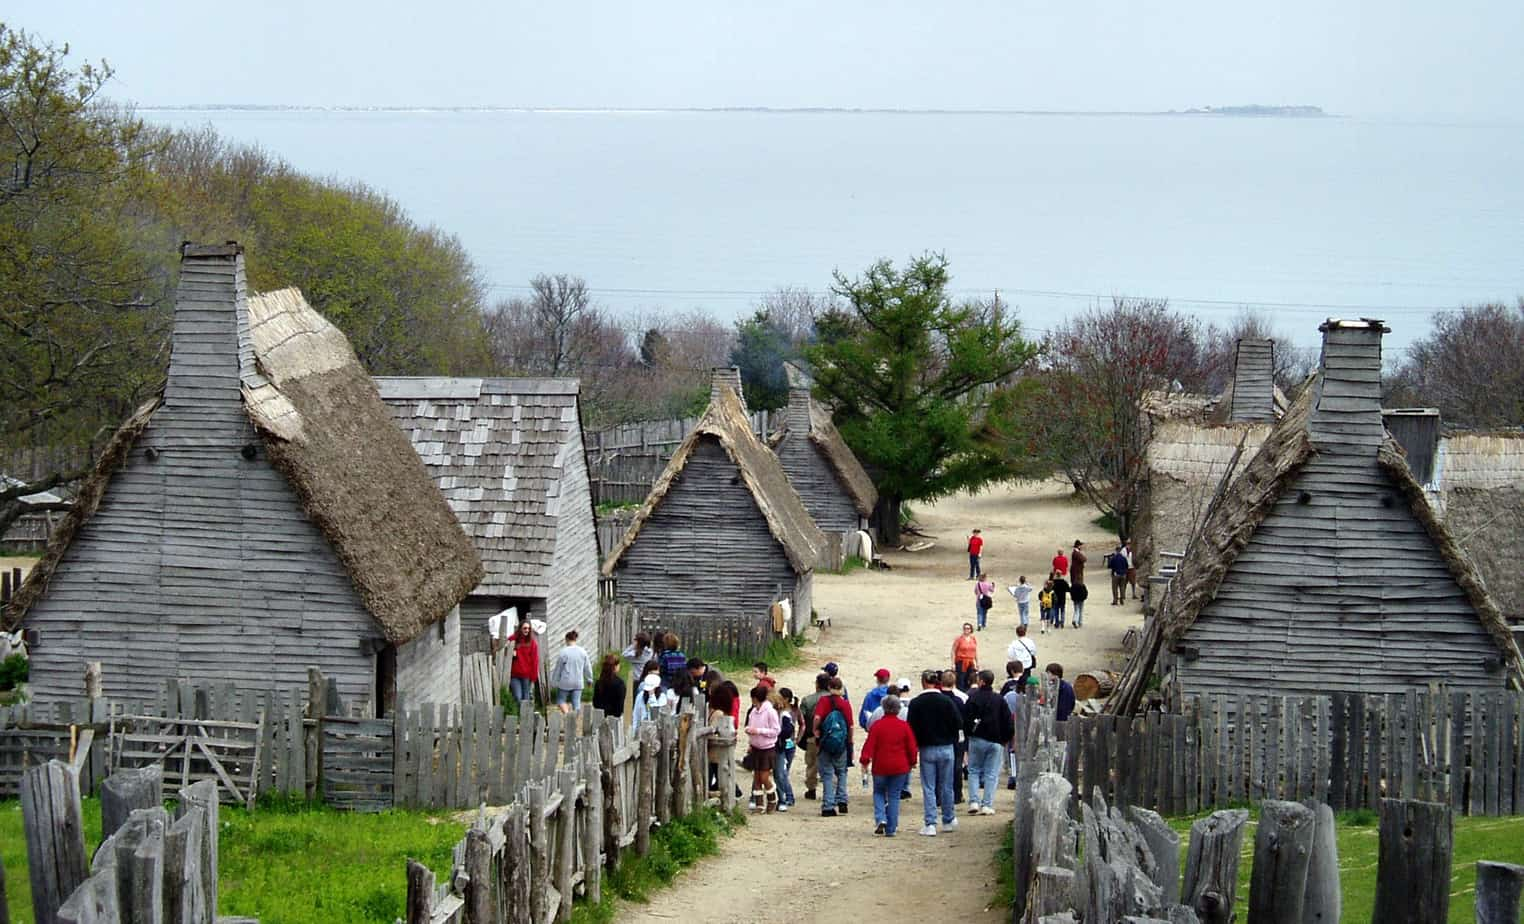 Visit the Plimoth Plantation & Enjoy